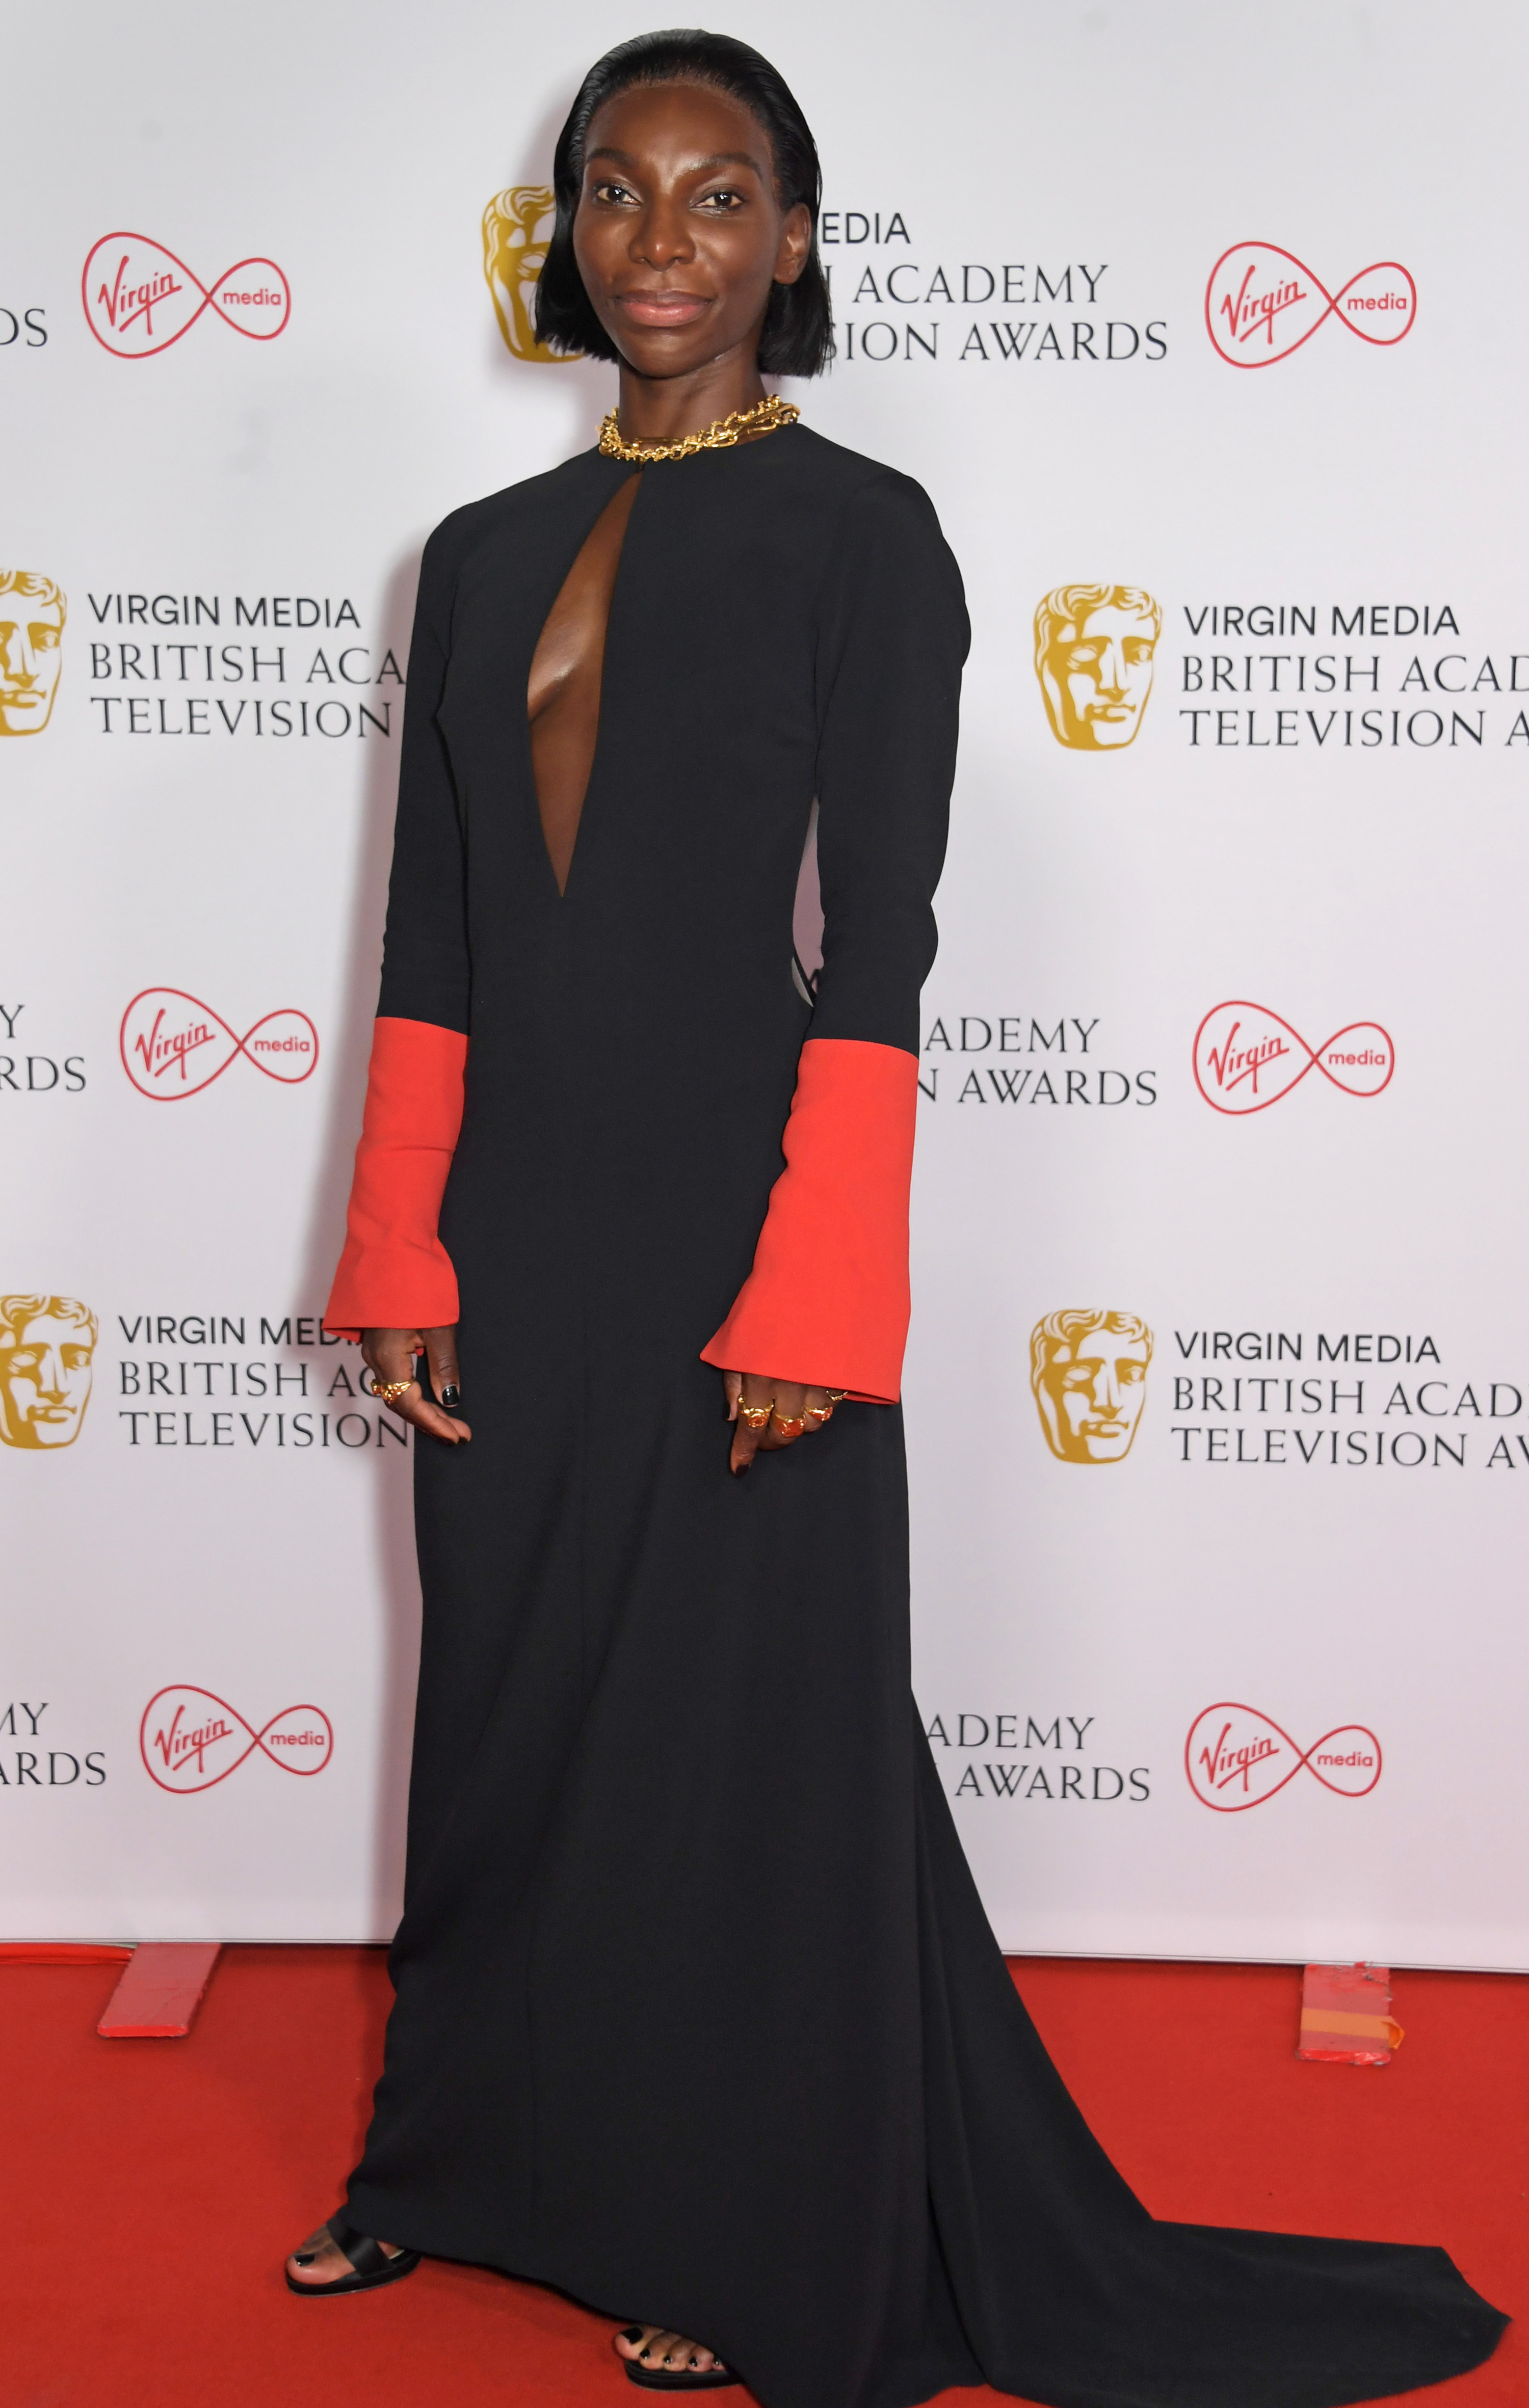 Michaela on the BAFTAs red carpet in a two-toned dress